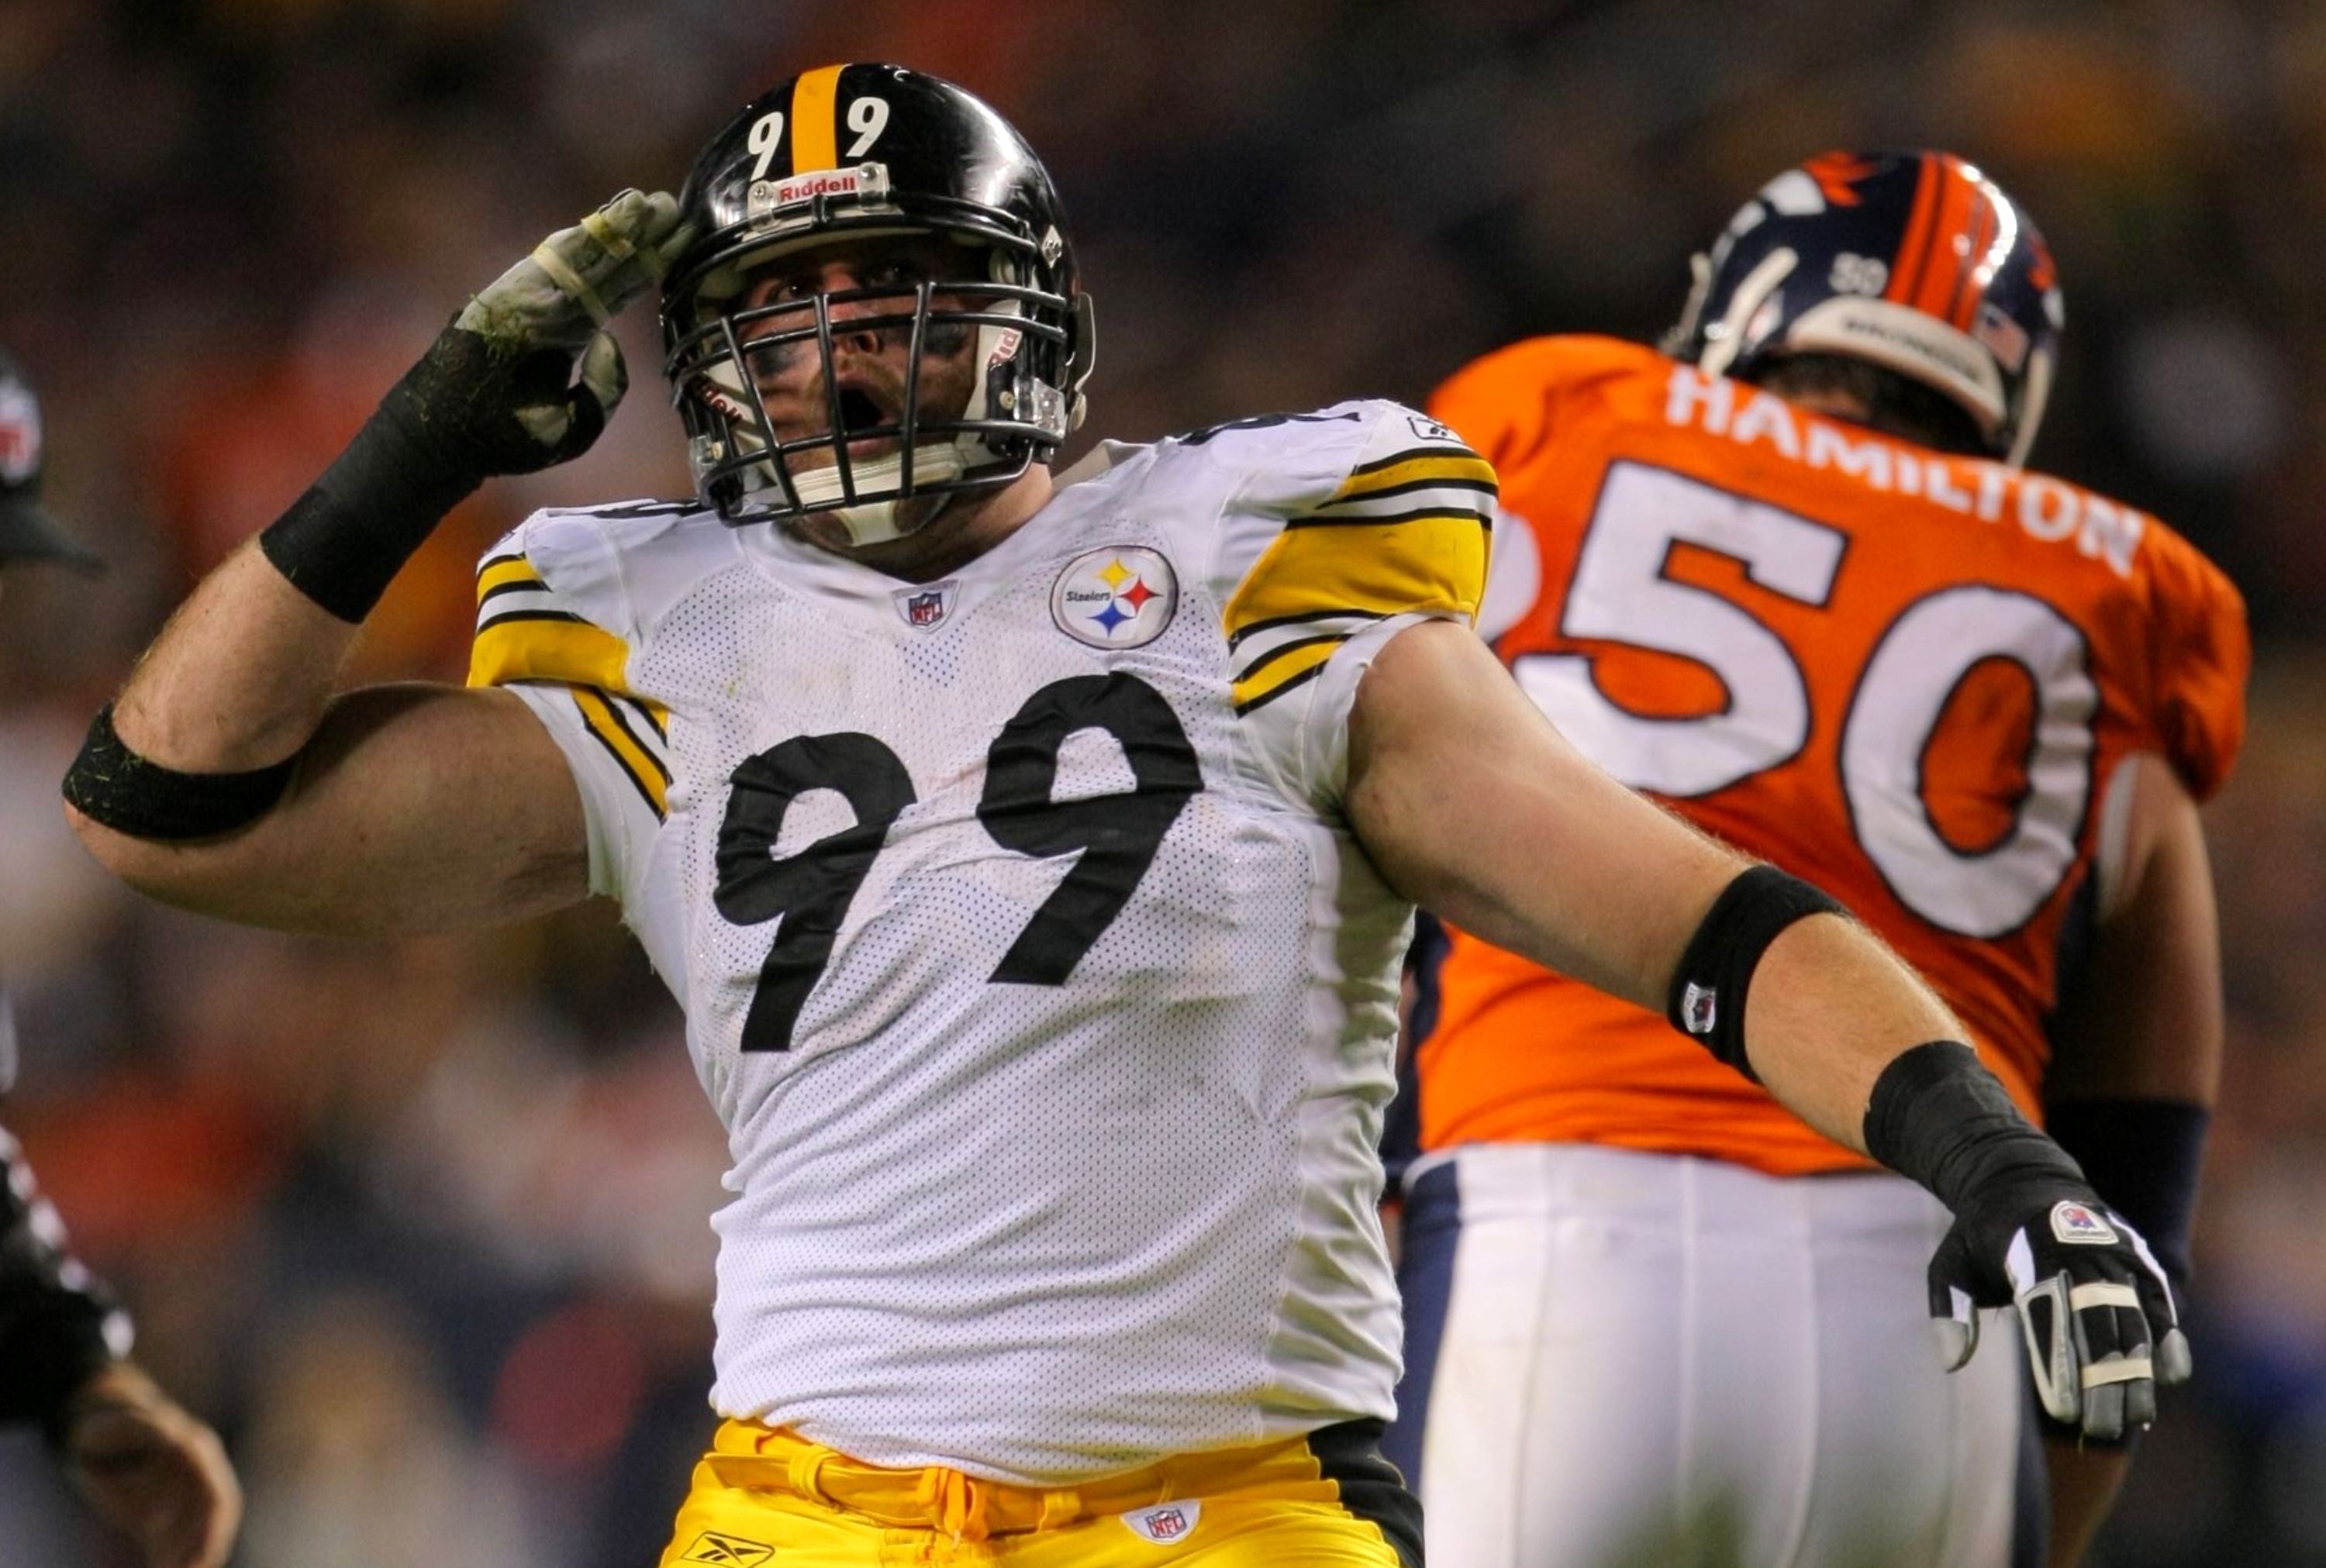 DENVER - NOVEMBER 09: Brett Keisel #99 of the Pittsburgh Steelers celebrates after a sack in the second quarter against the Denver Broncos at Invesco Field at Mile High on November 09, 2009 in Denver, Colorado. (Photo by Doug Pensinger/Getty Images)